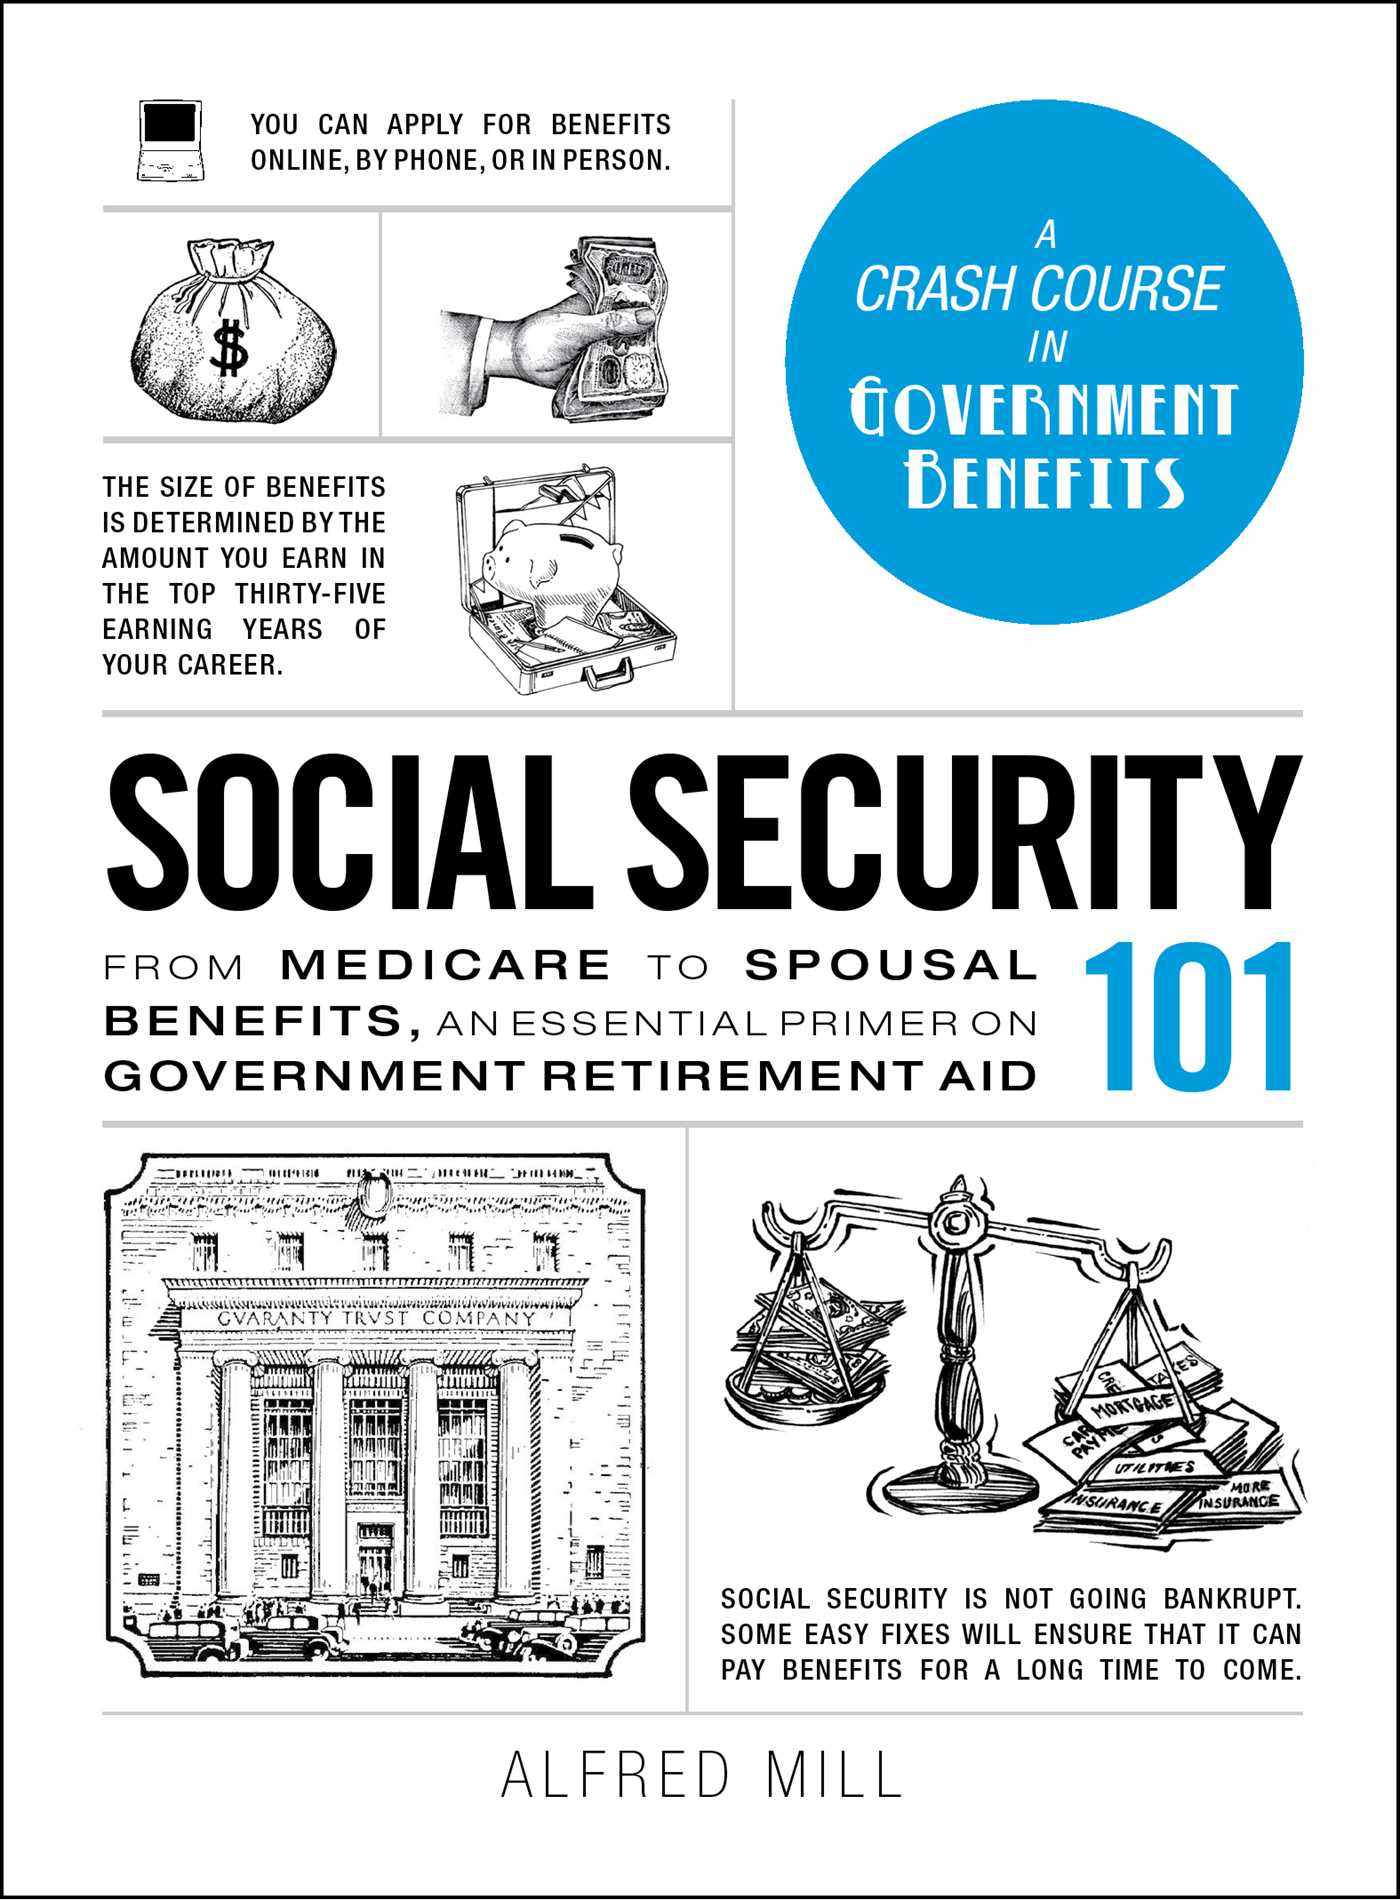 The united states cover up of the bankruptcy of medicare and the social security